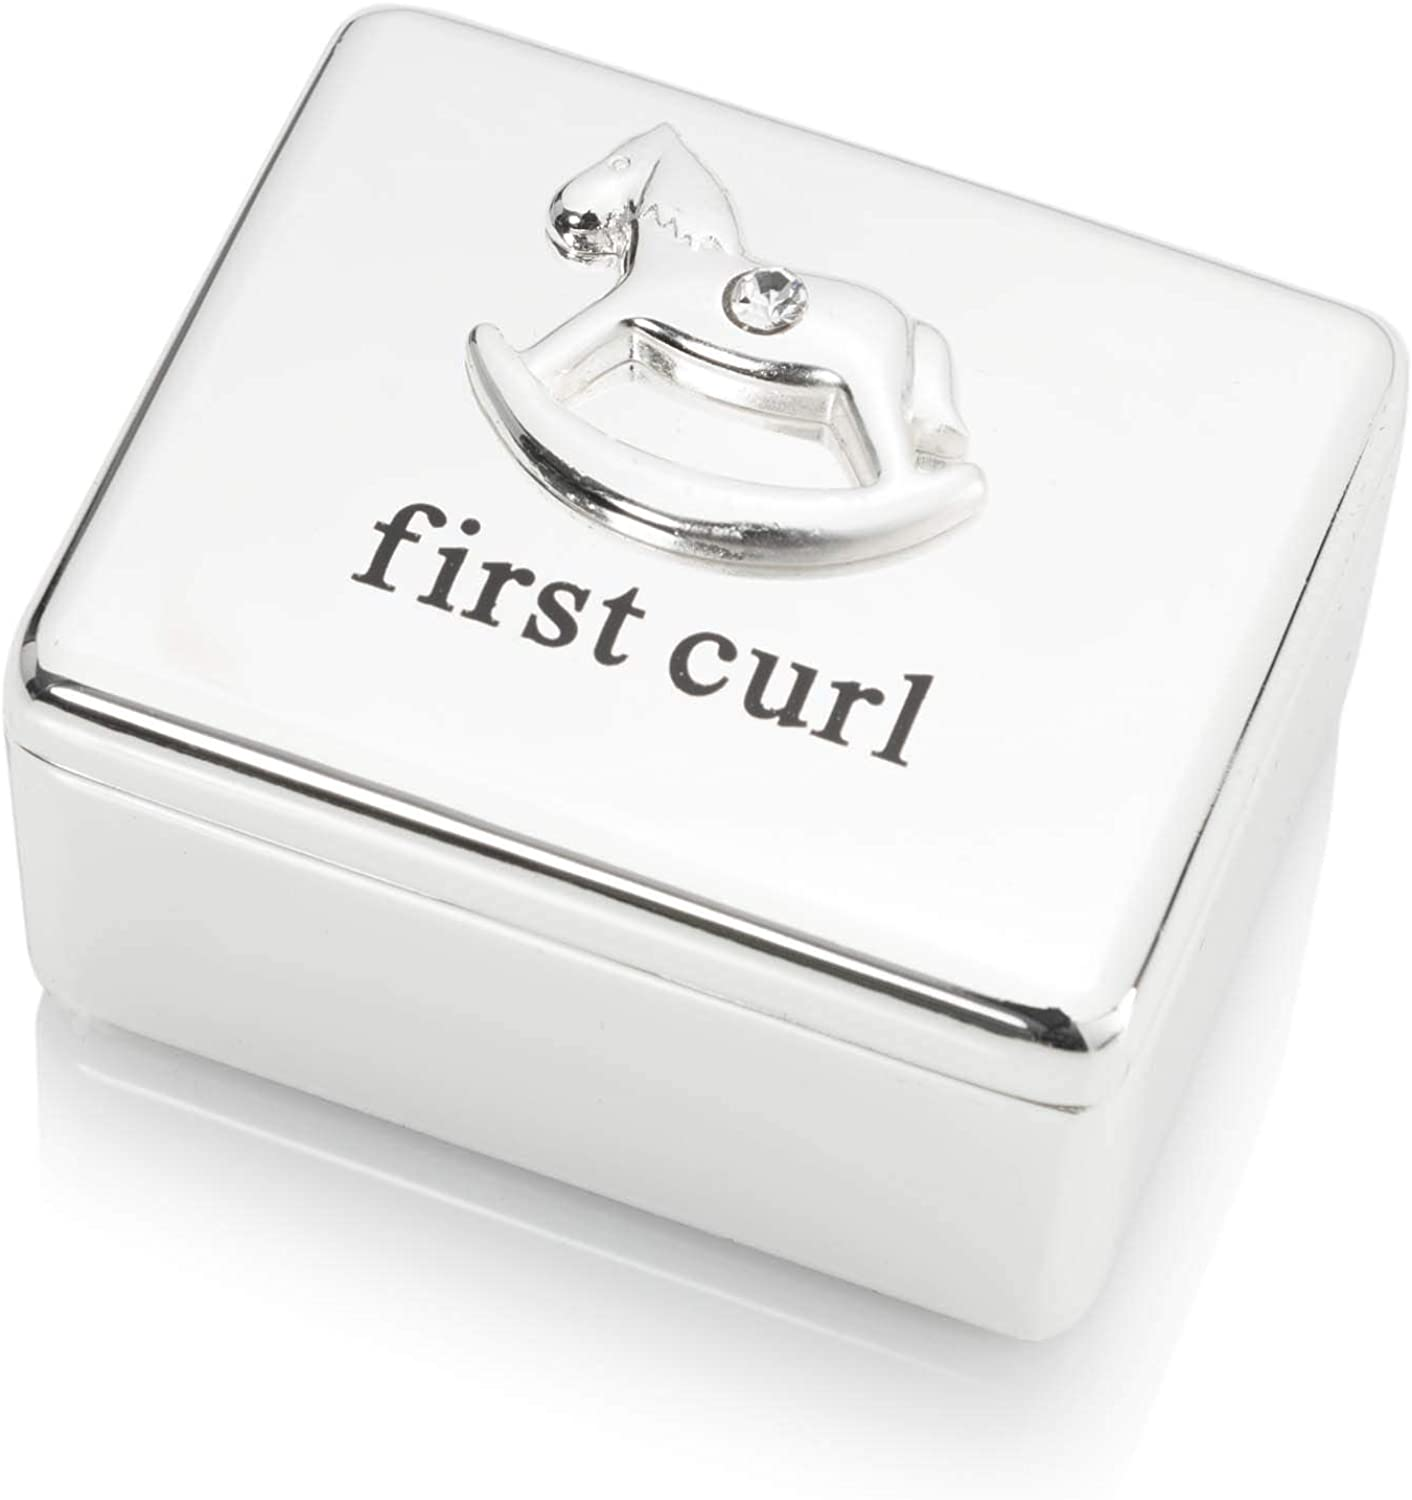 The Gift Experience Bambino Silverplated First Curl Keepsake Box